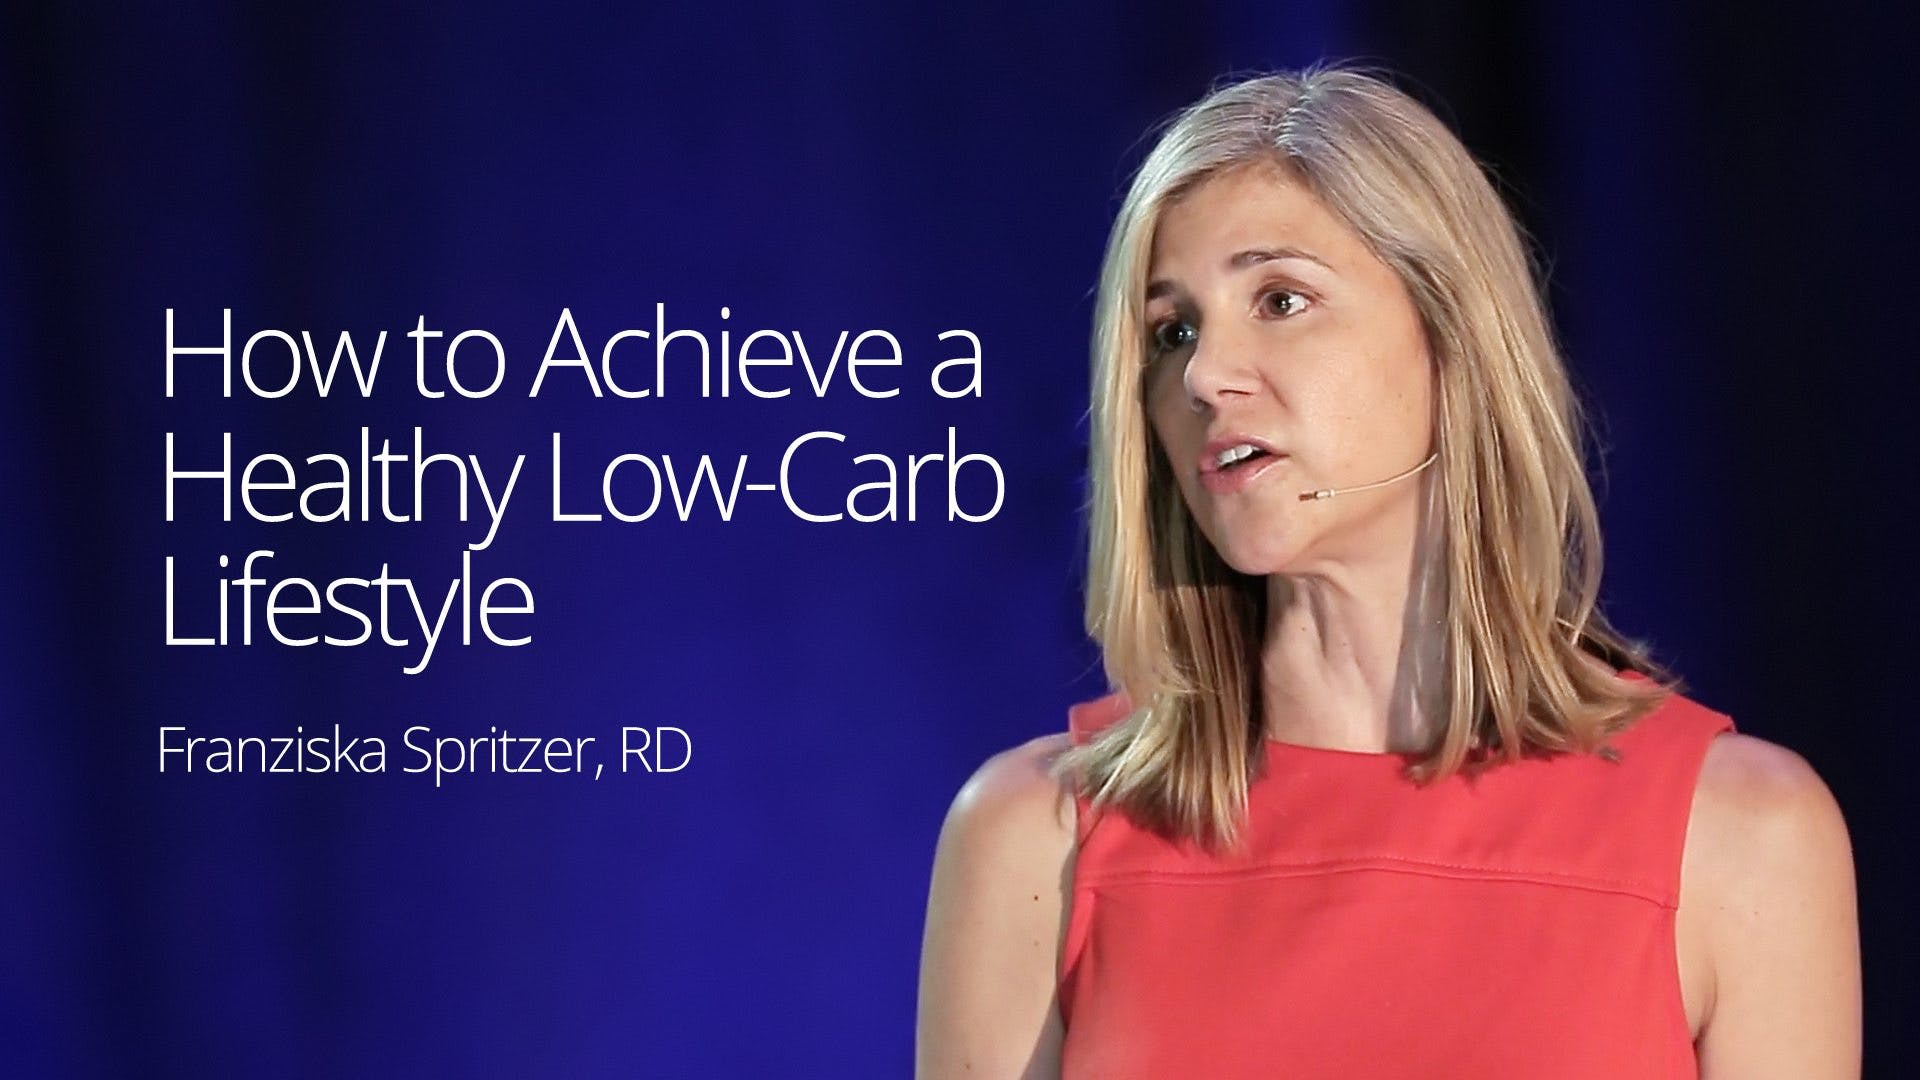 Ways to Do a Well-Formulated Low-Carb Diet